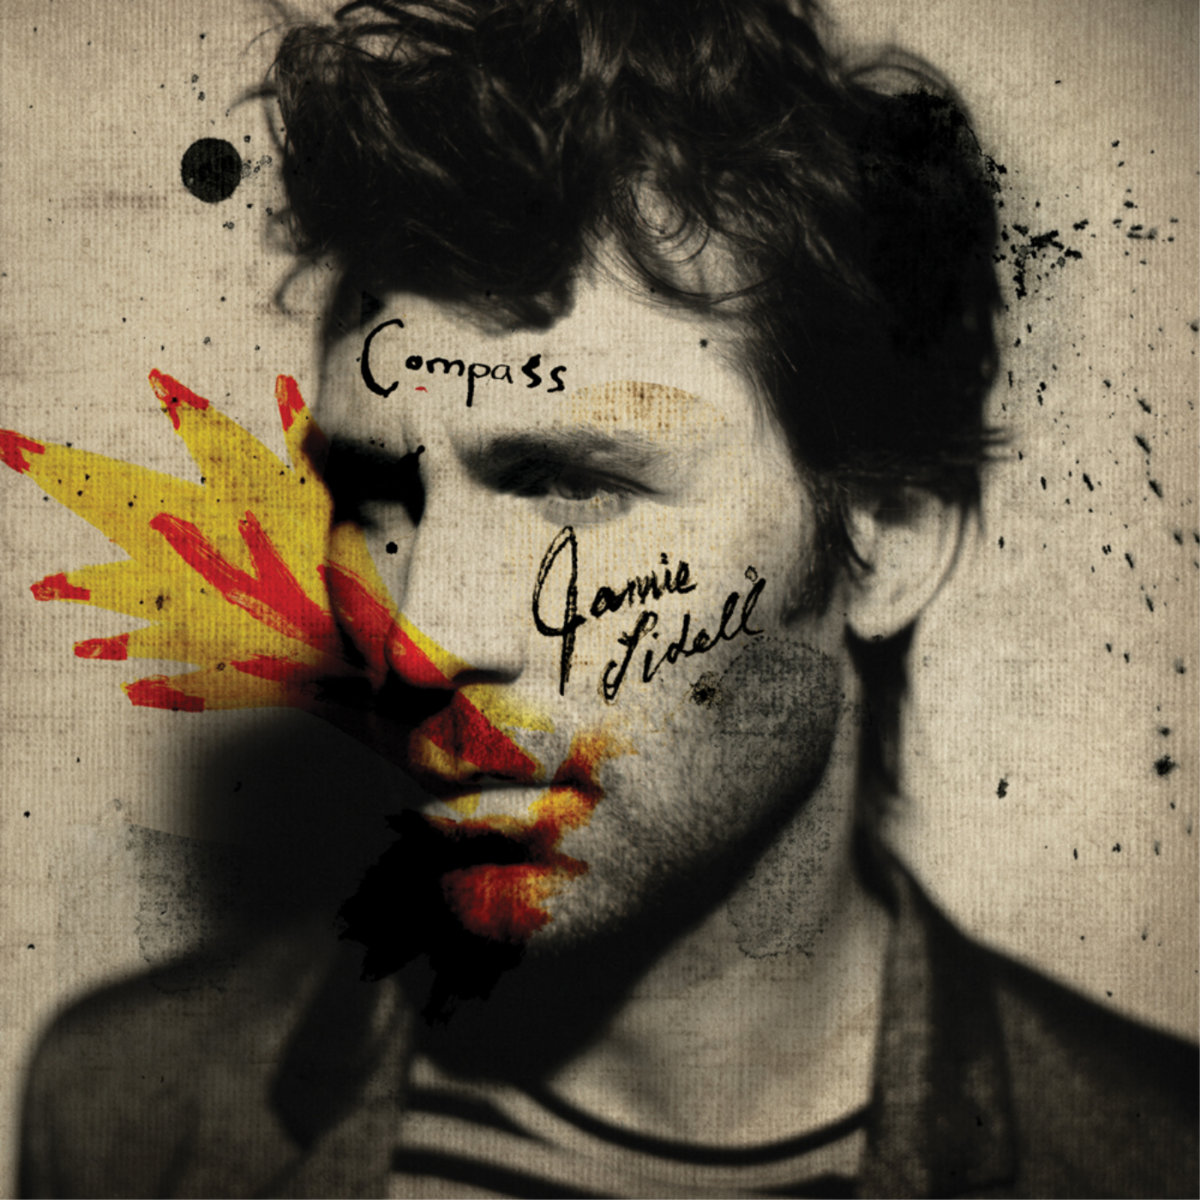 Jamie Lidell, Compass